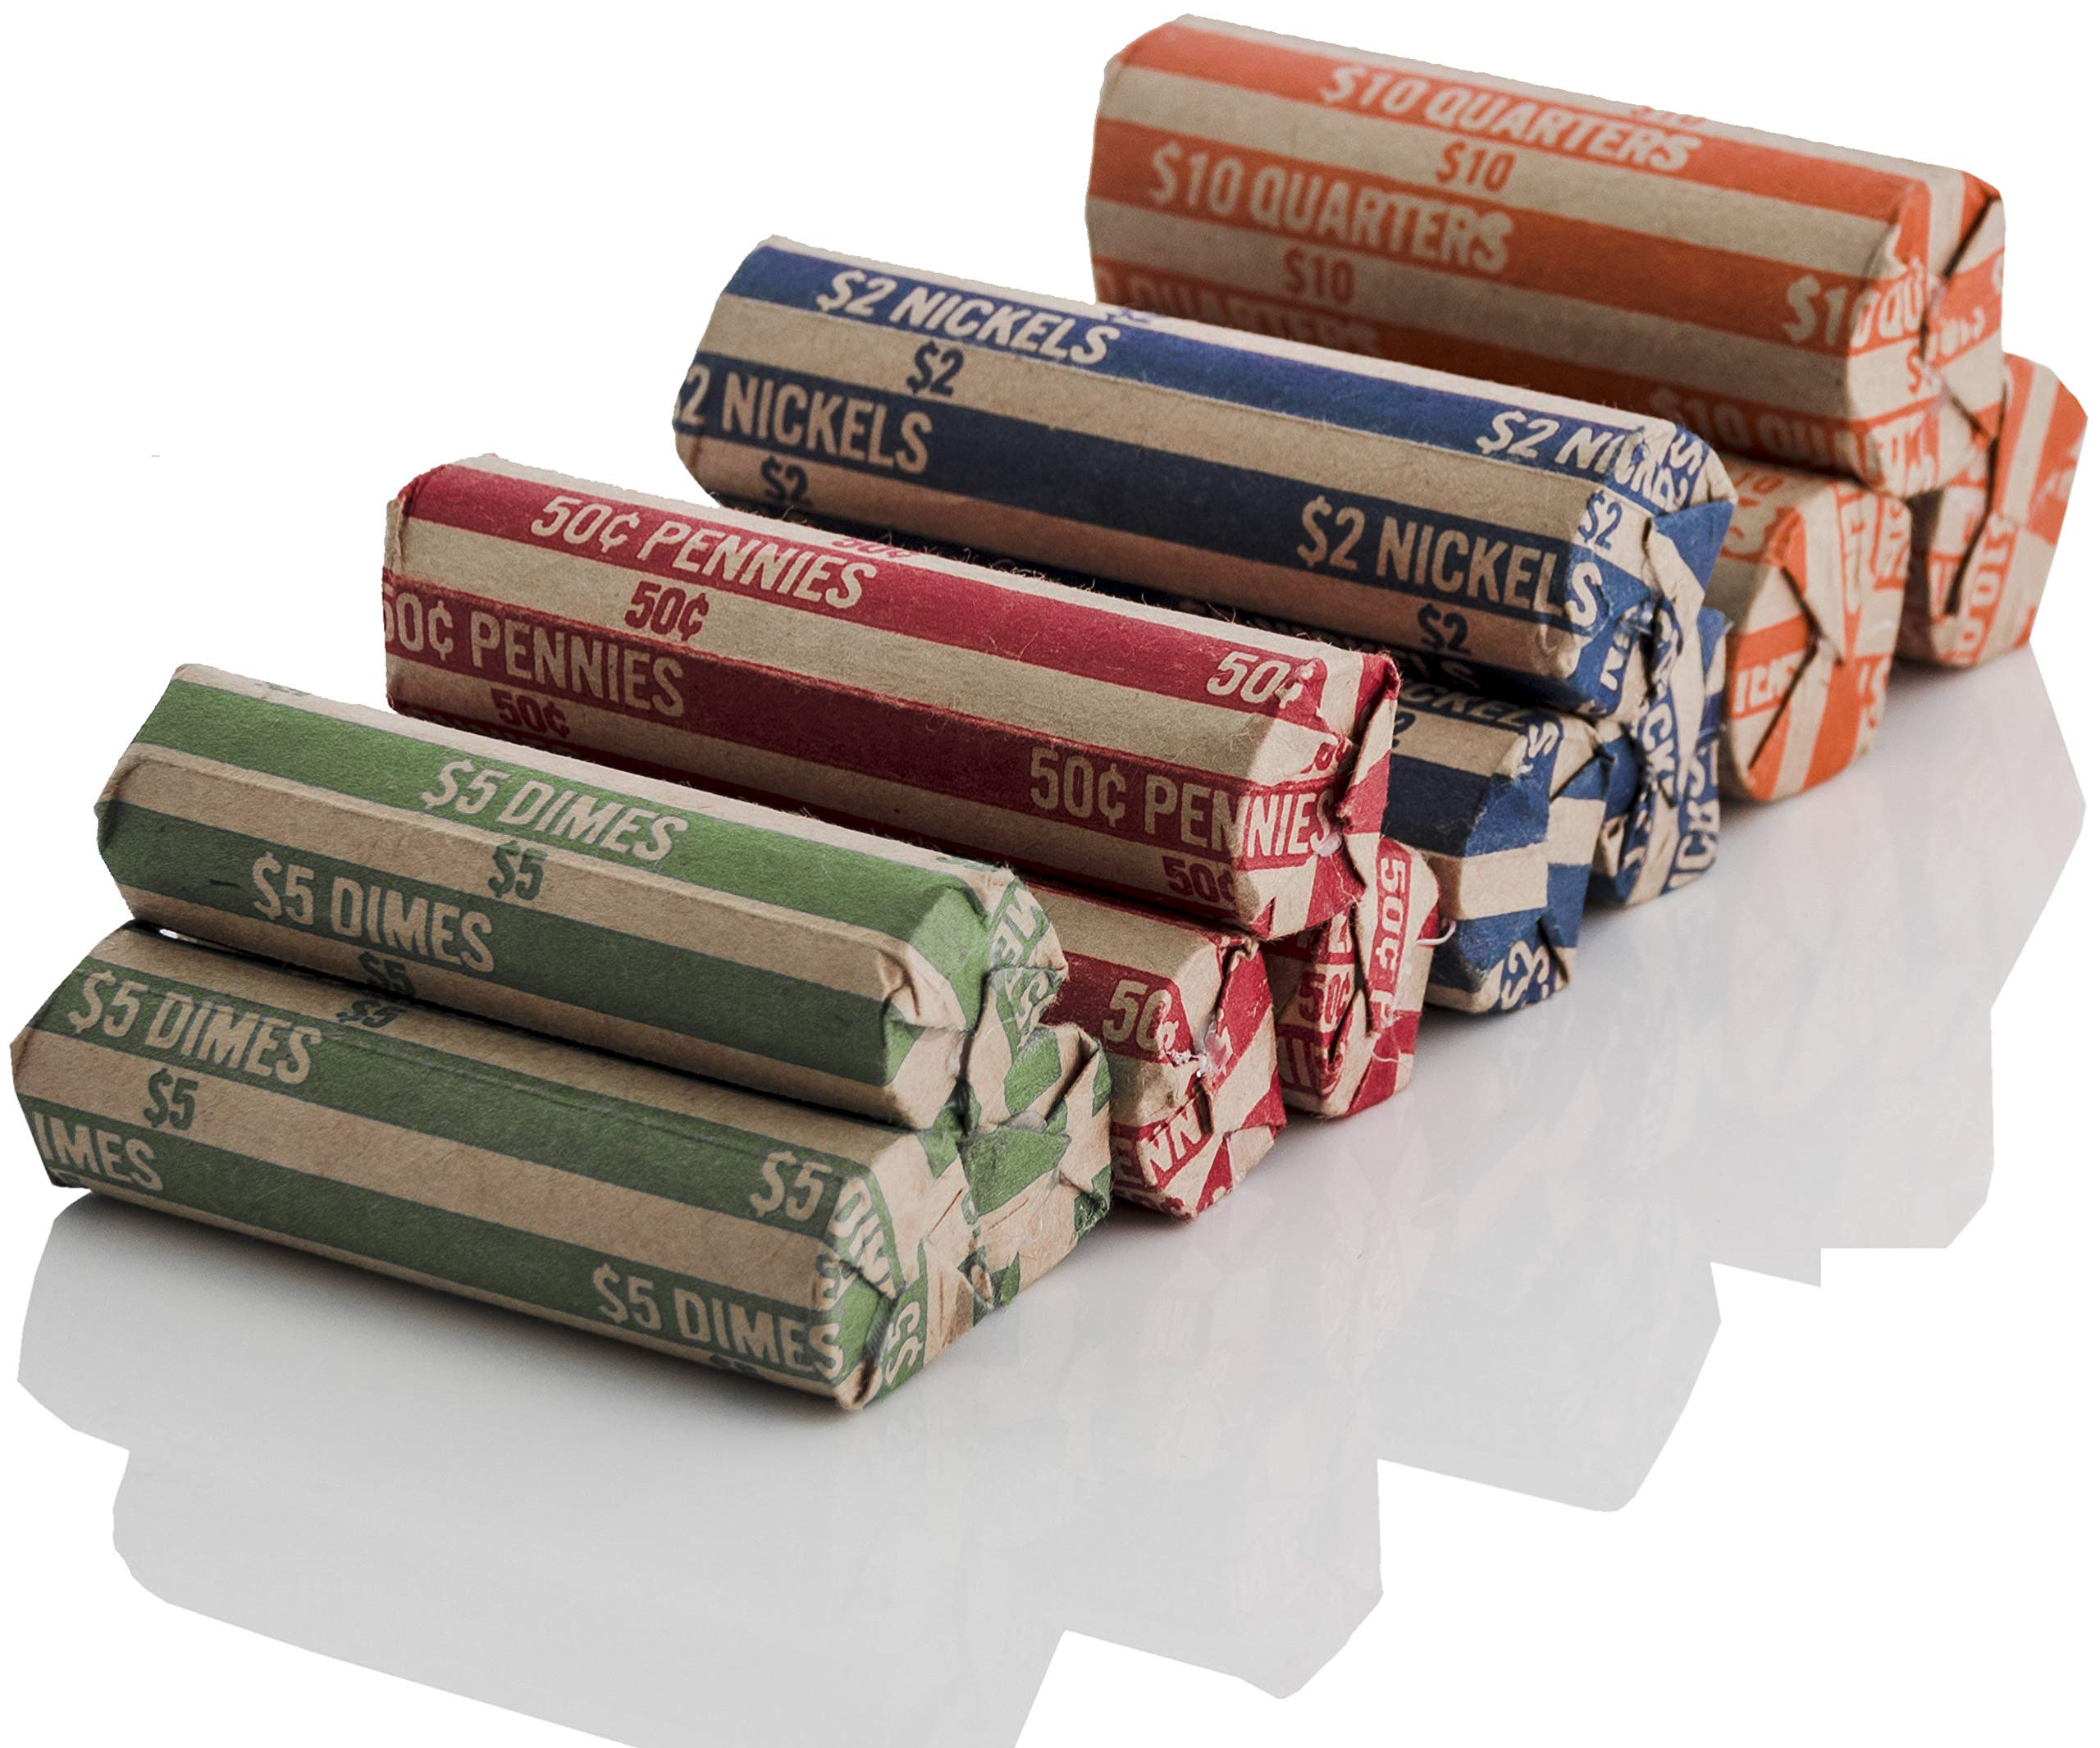 J Mark 100 Count Assorted Flat Coin Roll Wrappers, 25 Each of Quarter, Penny, Nickel and Dime Rollers and J Mark Coin Deposit Slip